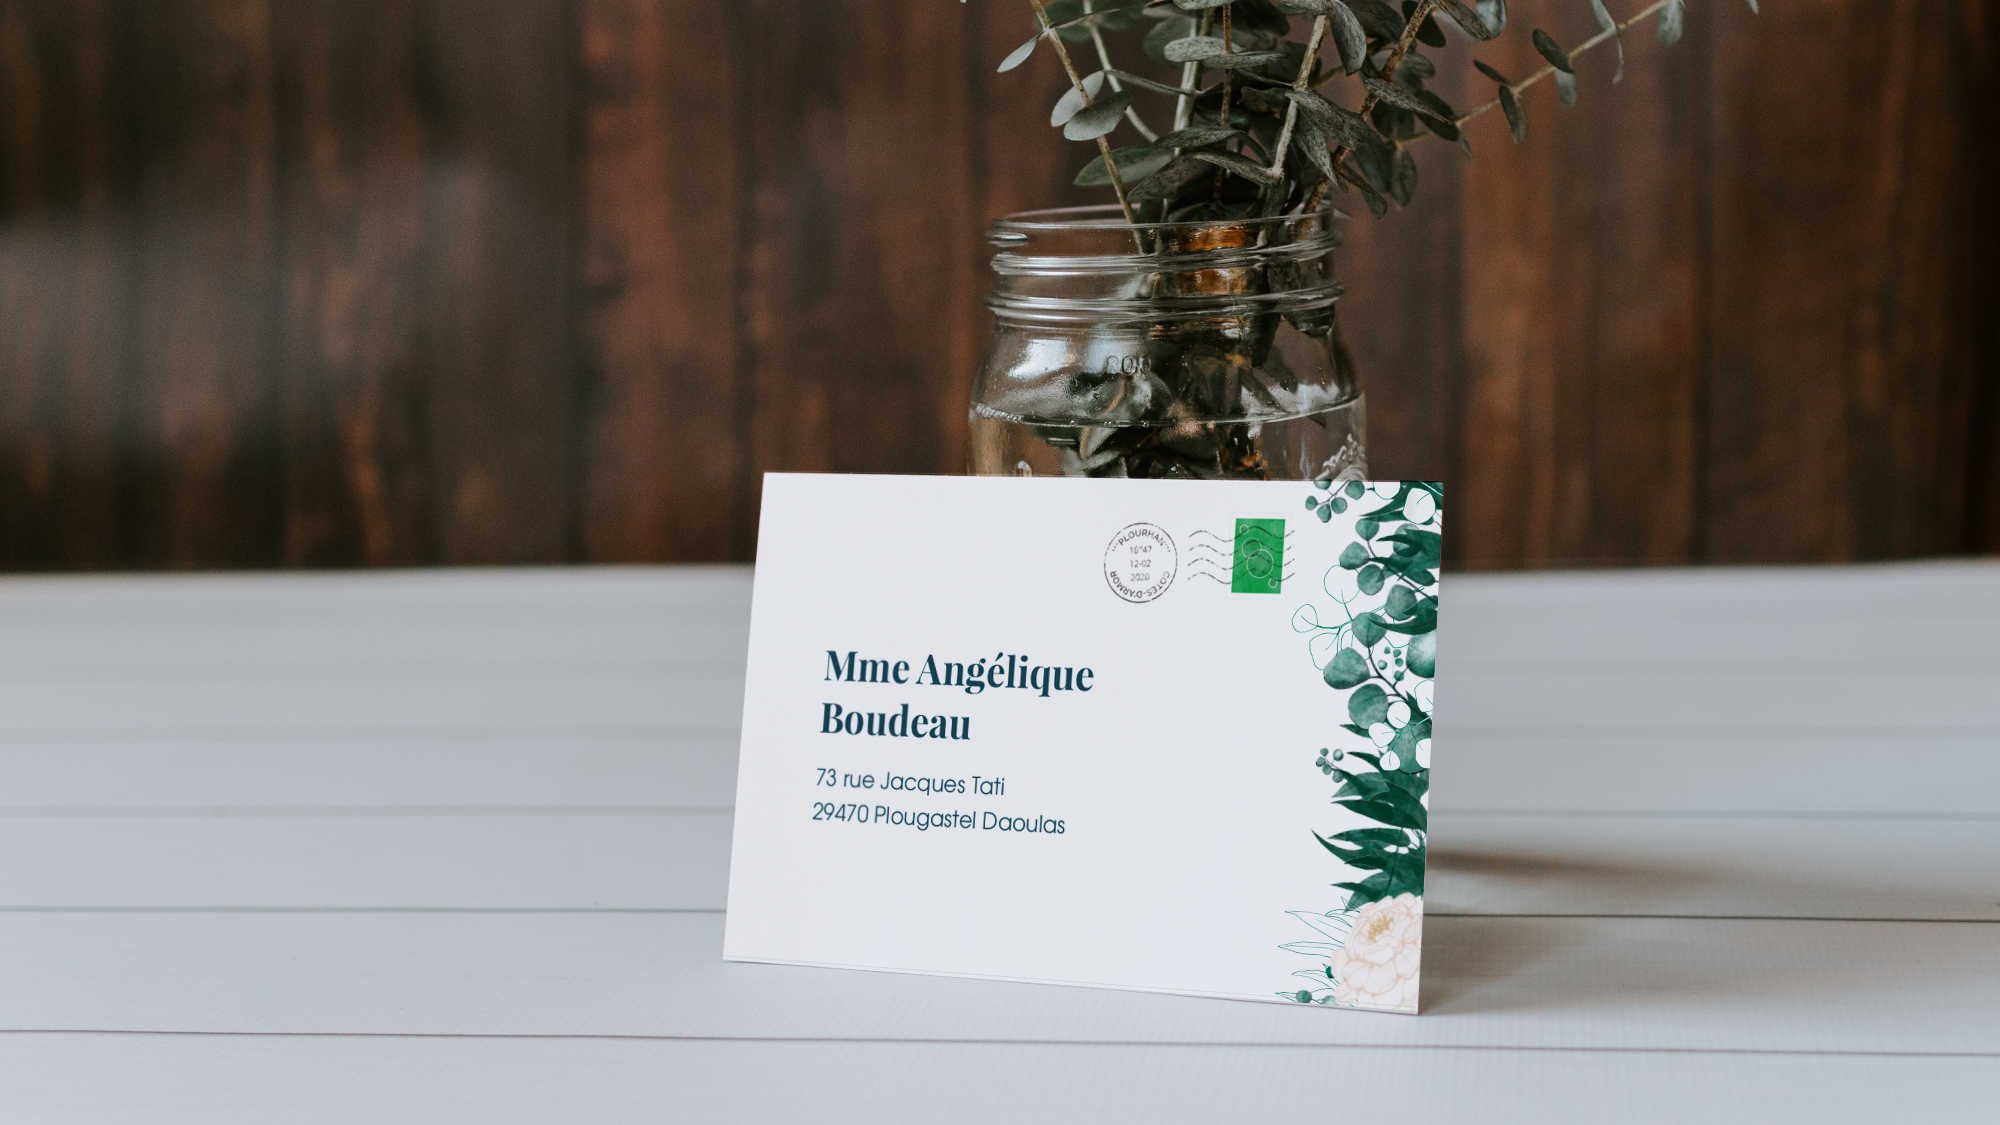 Mockup of the front of the envelope/invitation showing the addressee's name and address, two stamps and plants illustrations. The invite is displayed on the front of a vase containing a green-blue bunch of plants with a wooden panel background visible.